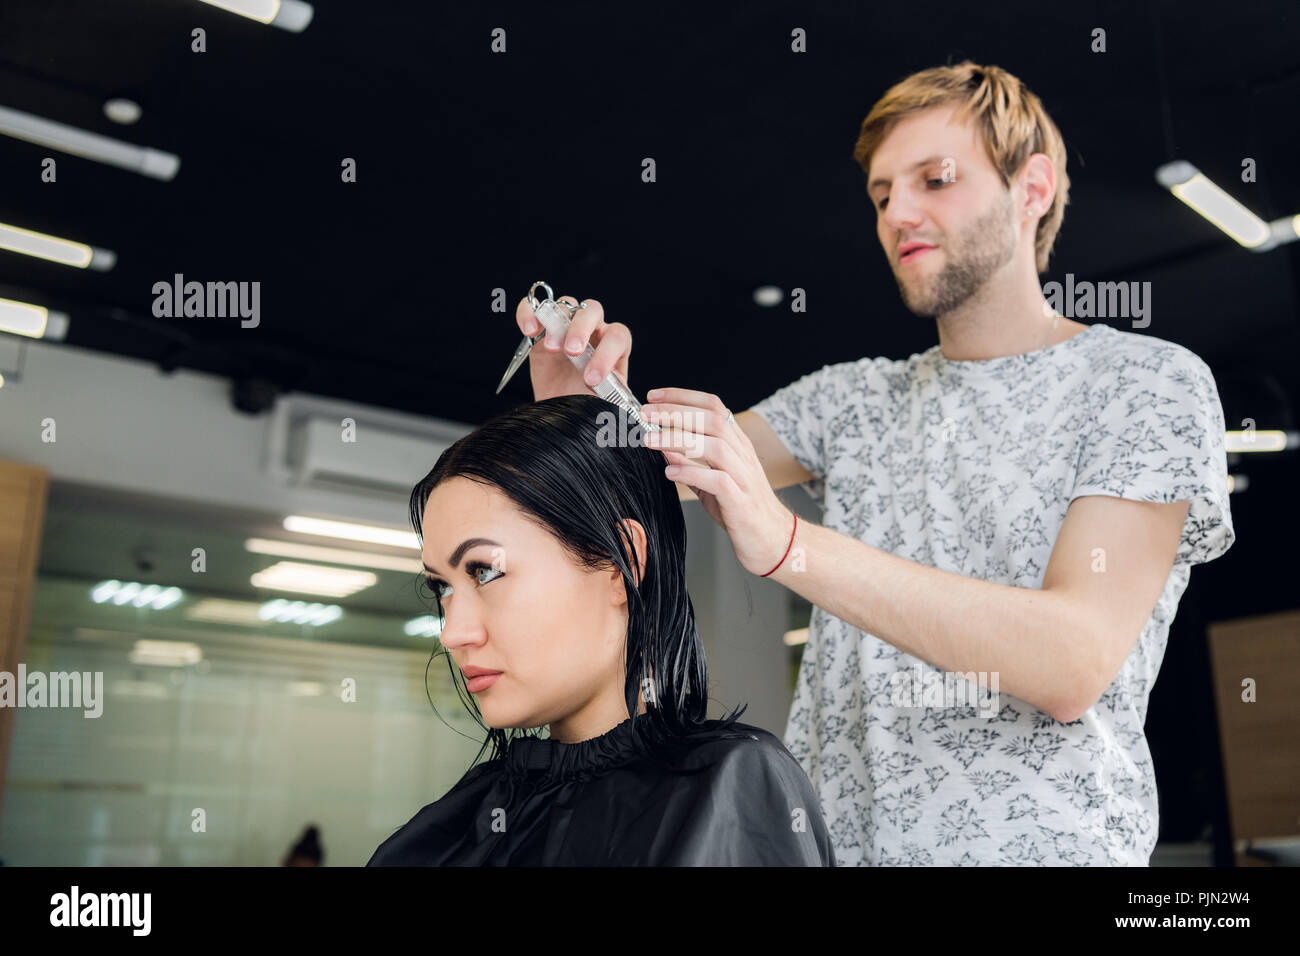 Hairdresser creating a hairstyle for beautiful woman closeup - Stock Image